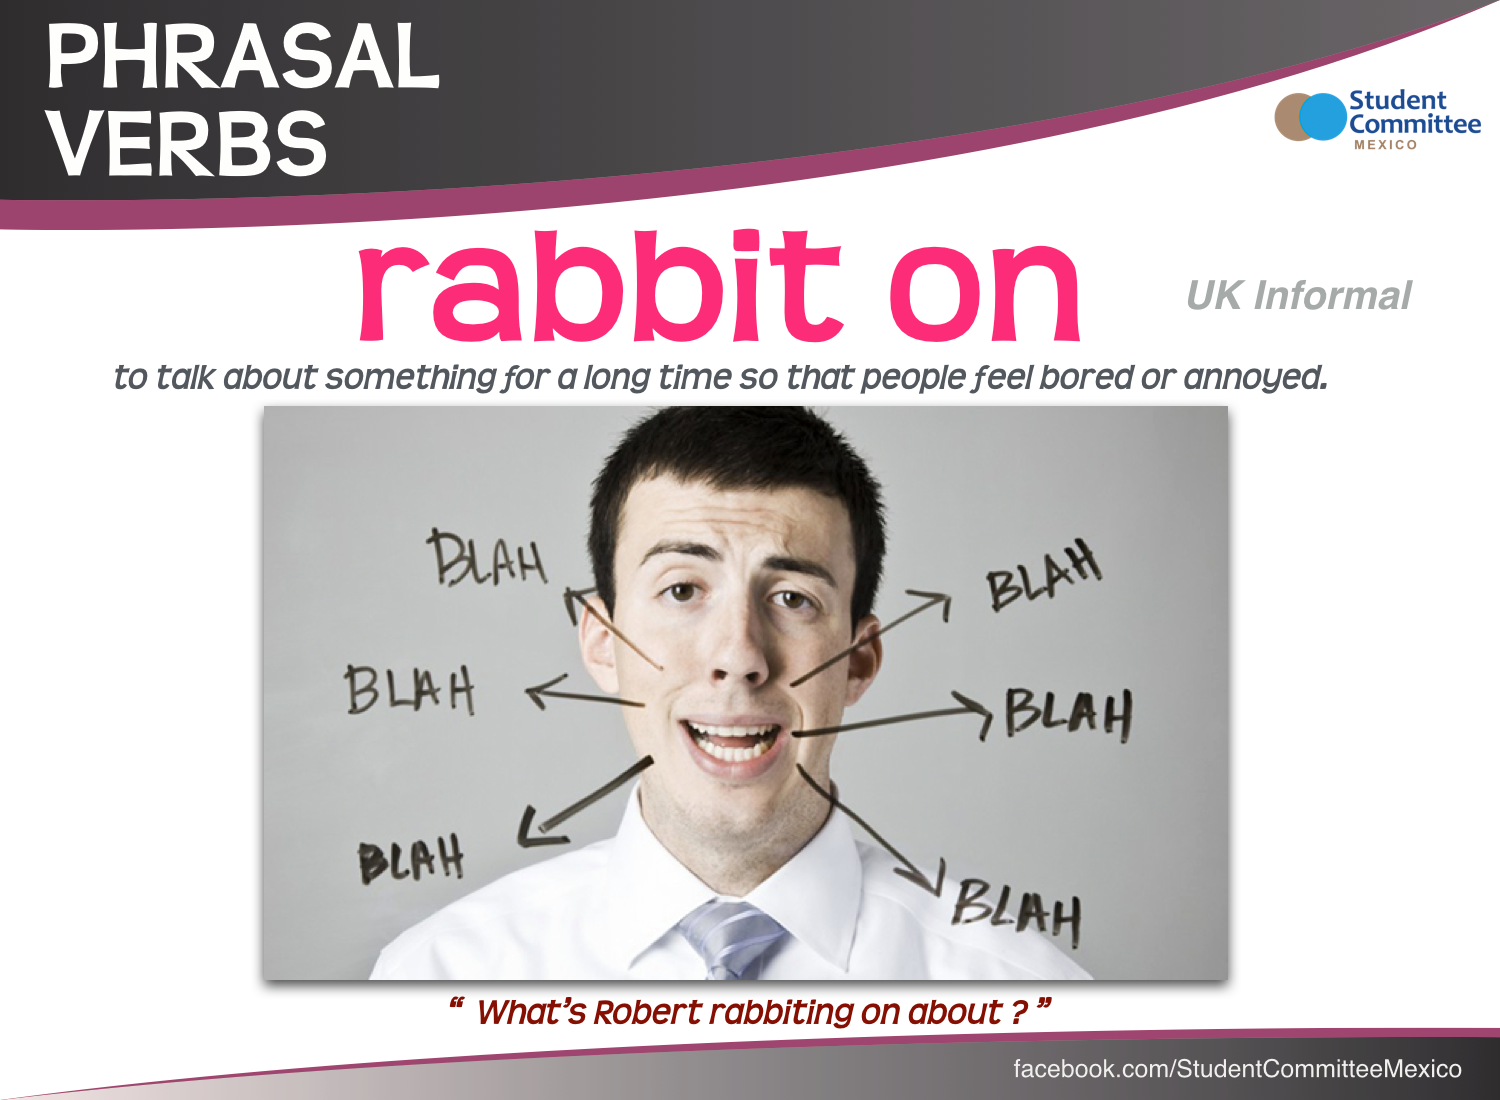 Aula De Inglês Aprender Phrasal Verbs In English Com: ' Rabbit On ' PHRASAL VERBS